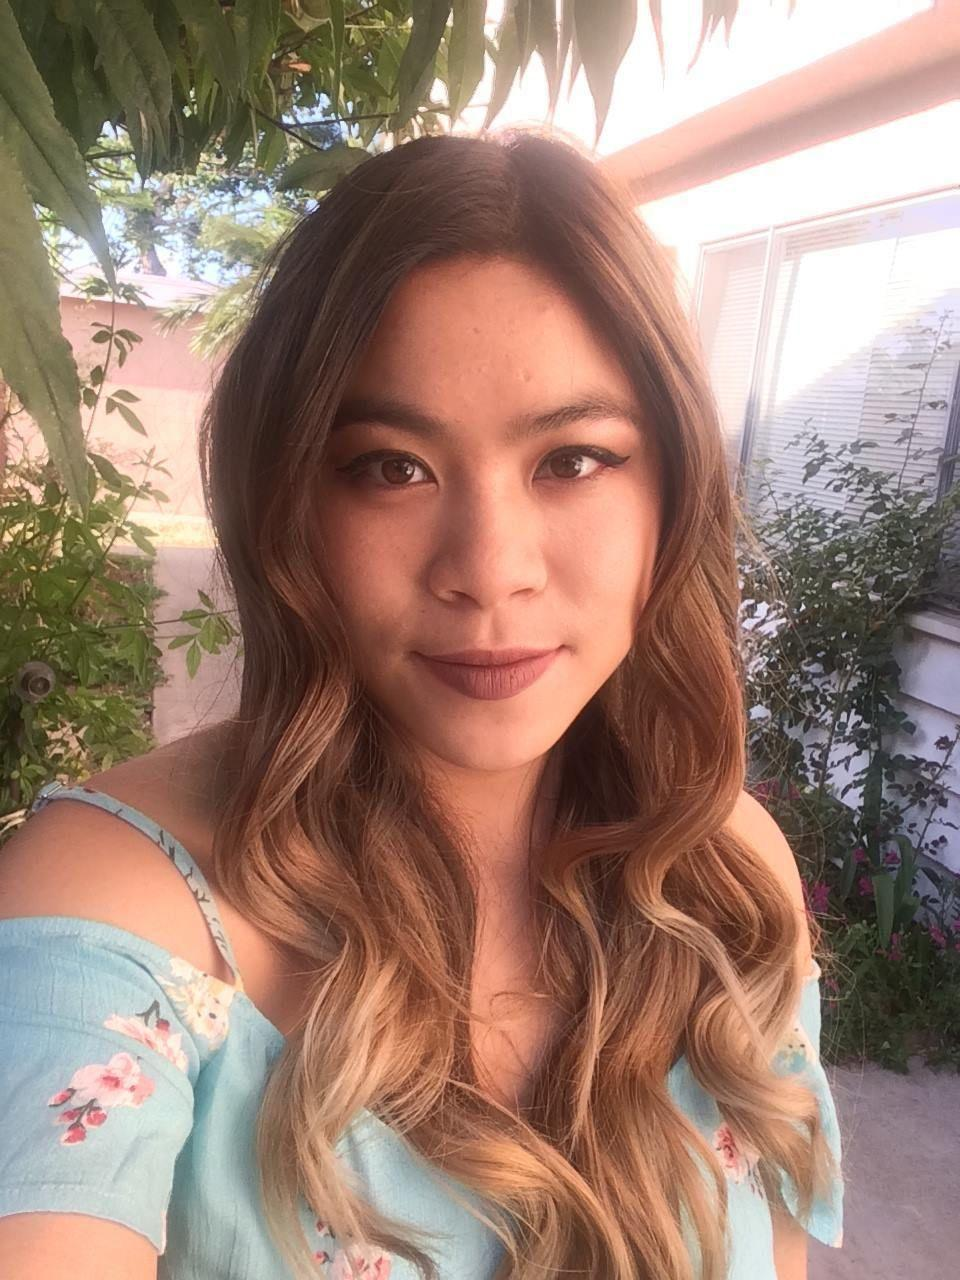 asian singles in newport Meet your lesbian match a premium service designed specifically for lesbians review matches for free join now.